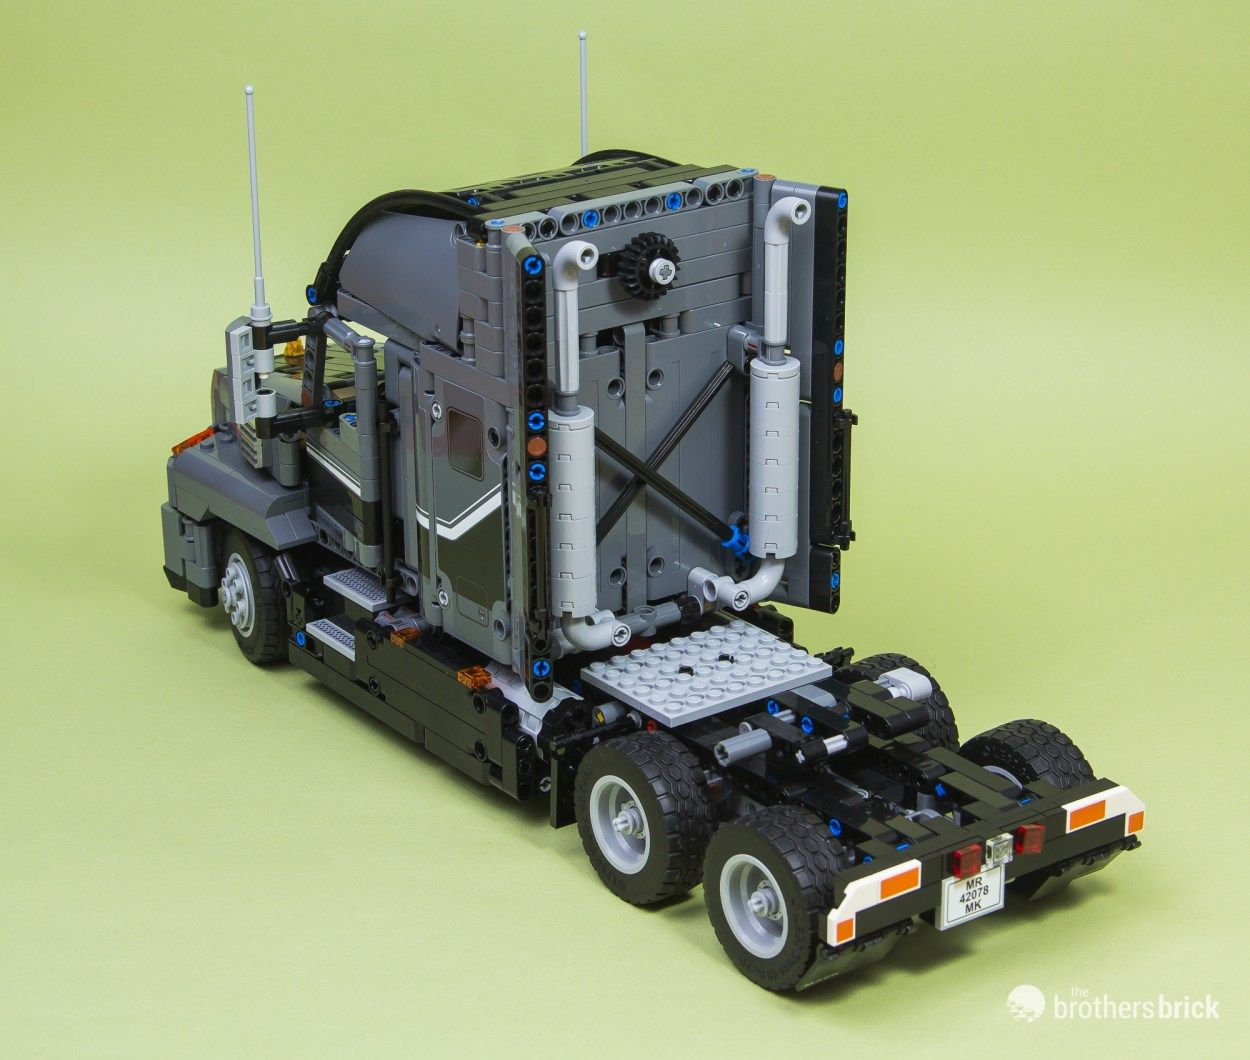 The Mack Anthem Semi Truck Roars To Life With Lego Technic Set 42078